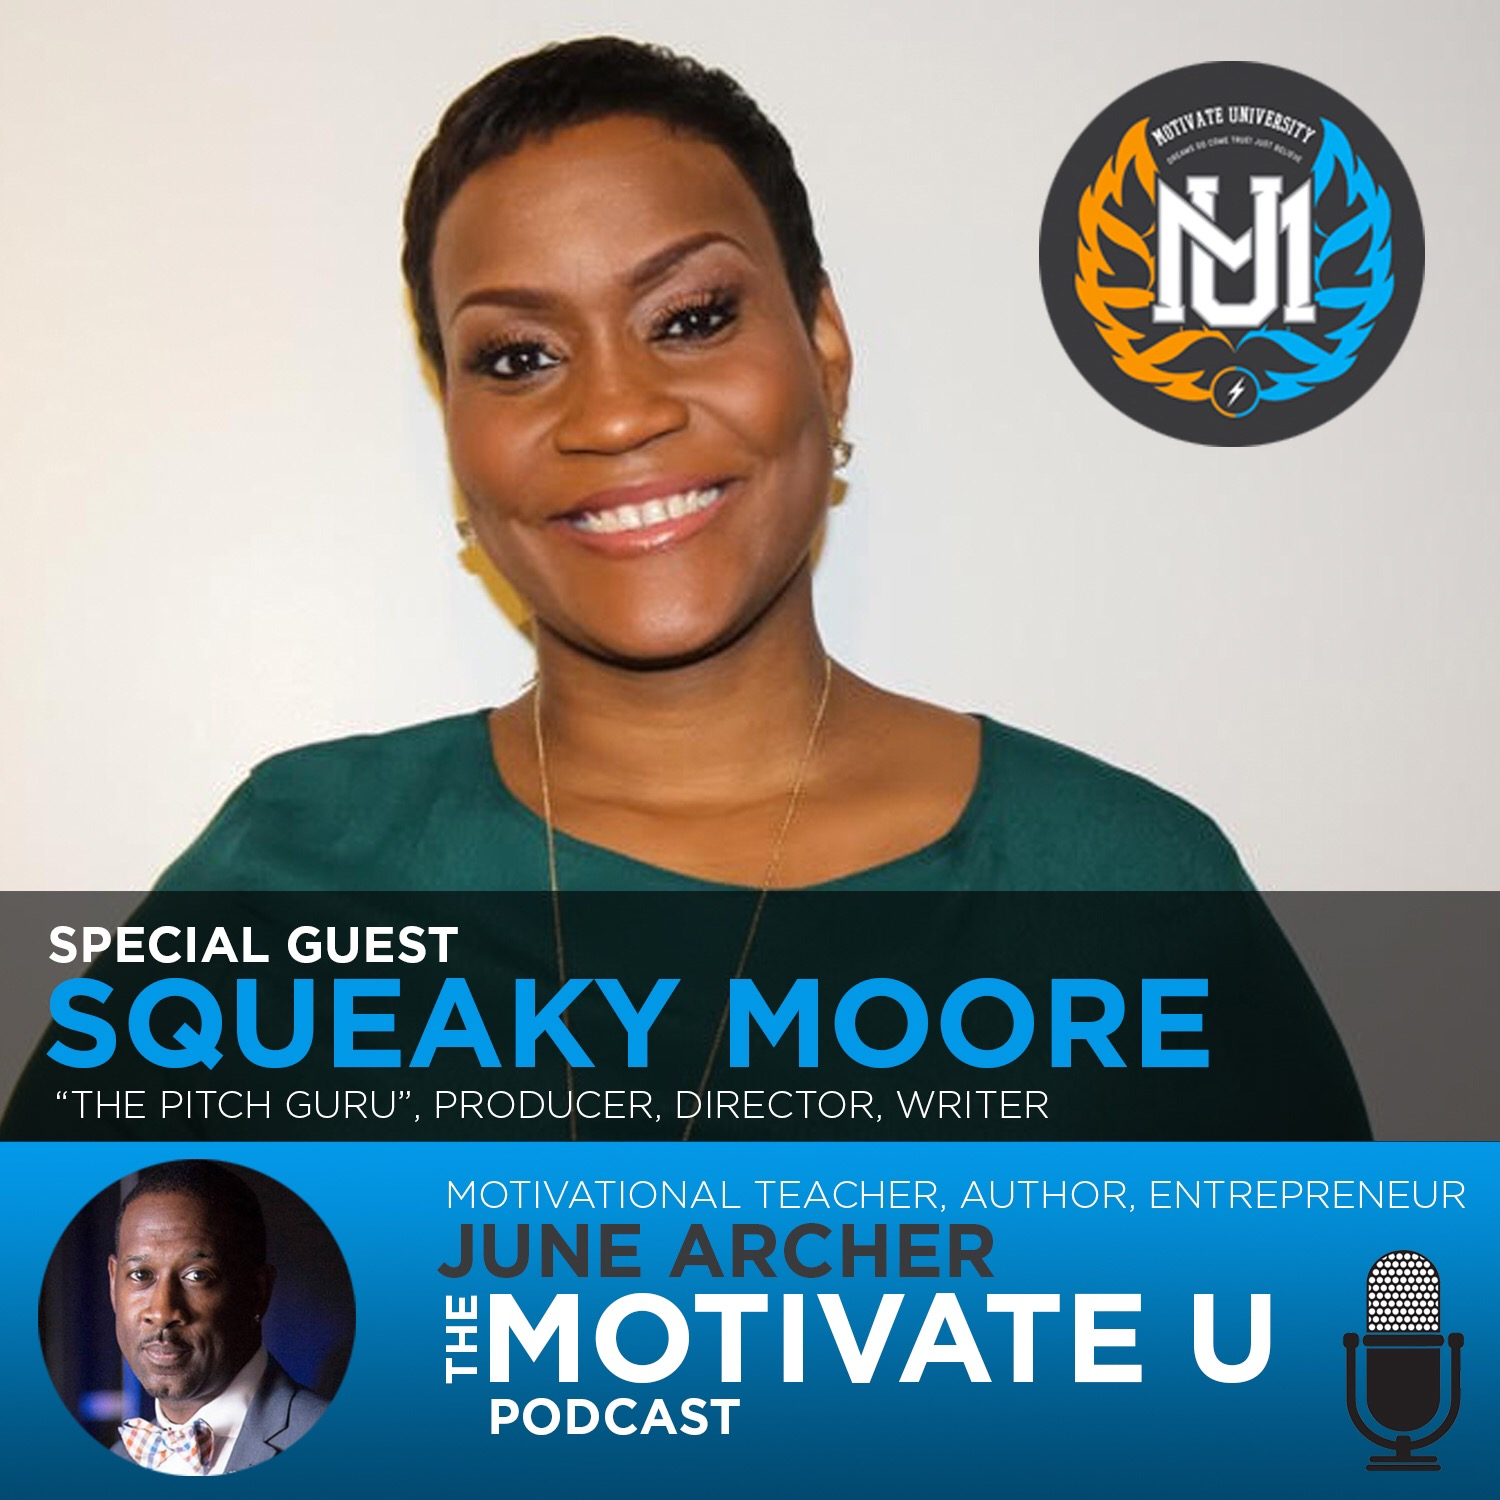 Squeaky Moore on the Motivate U Podcast with June Archer